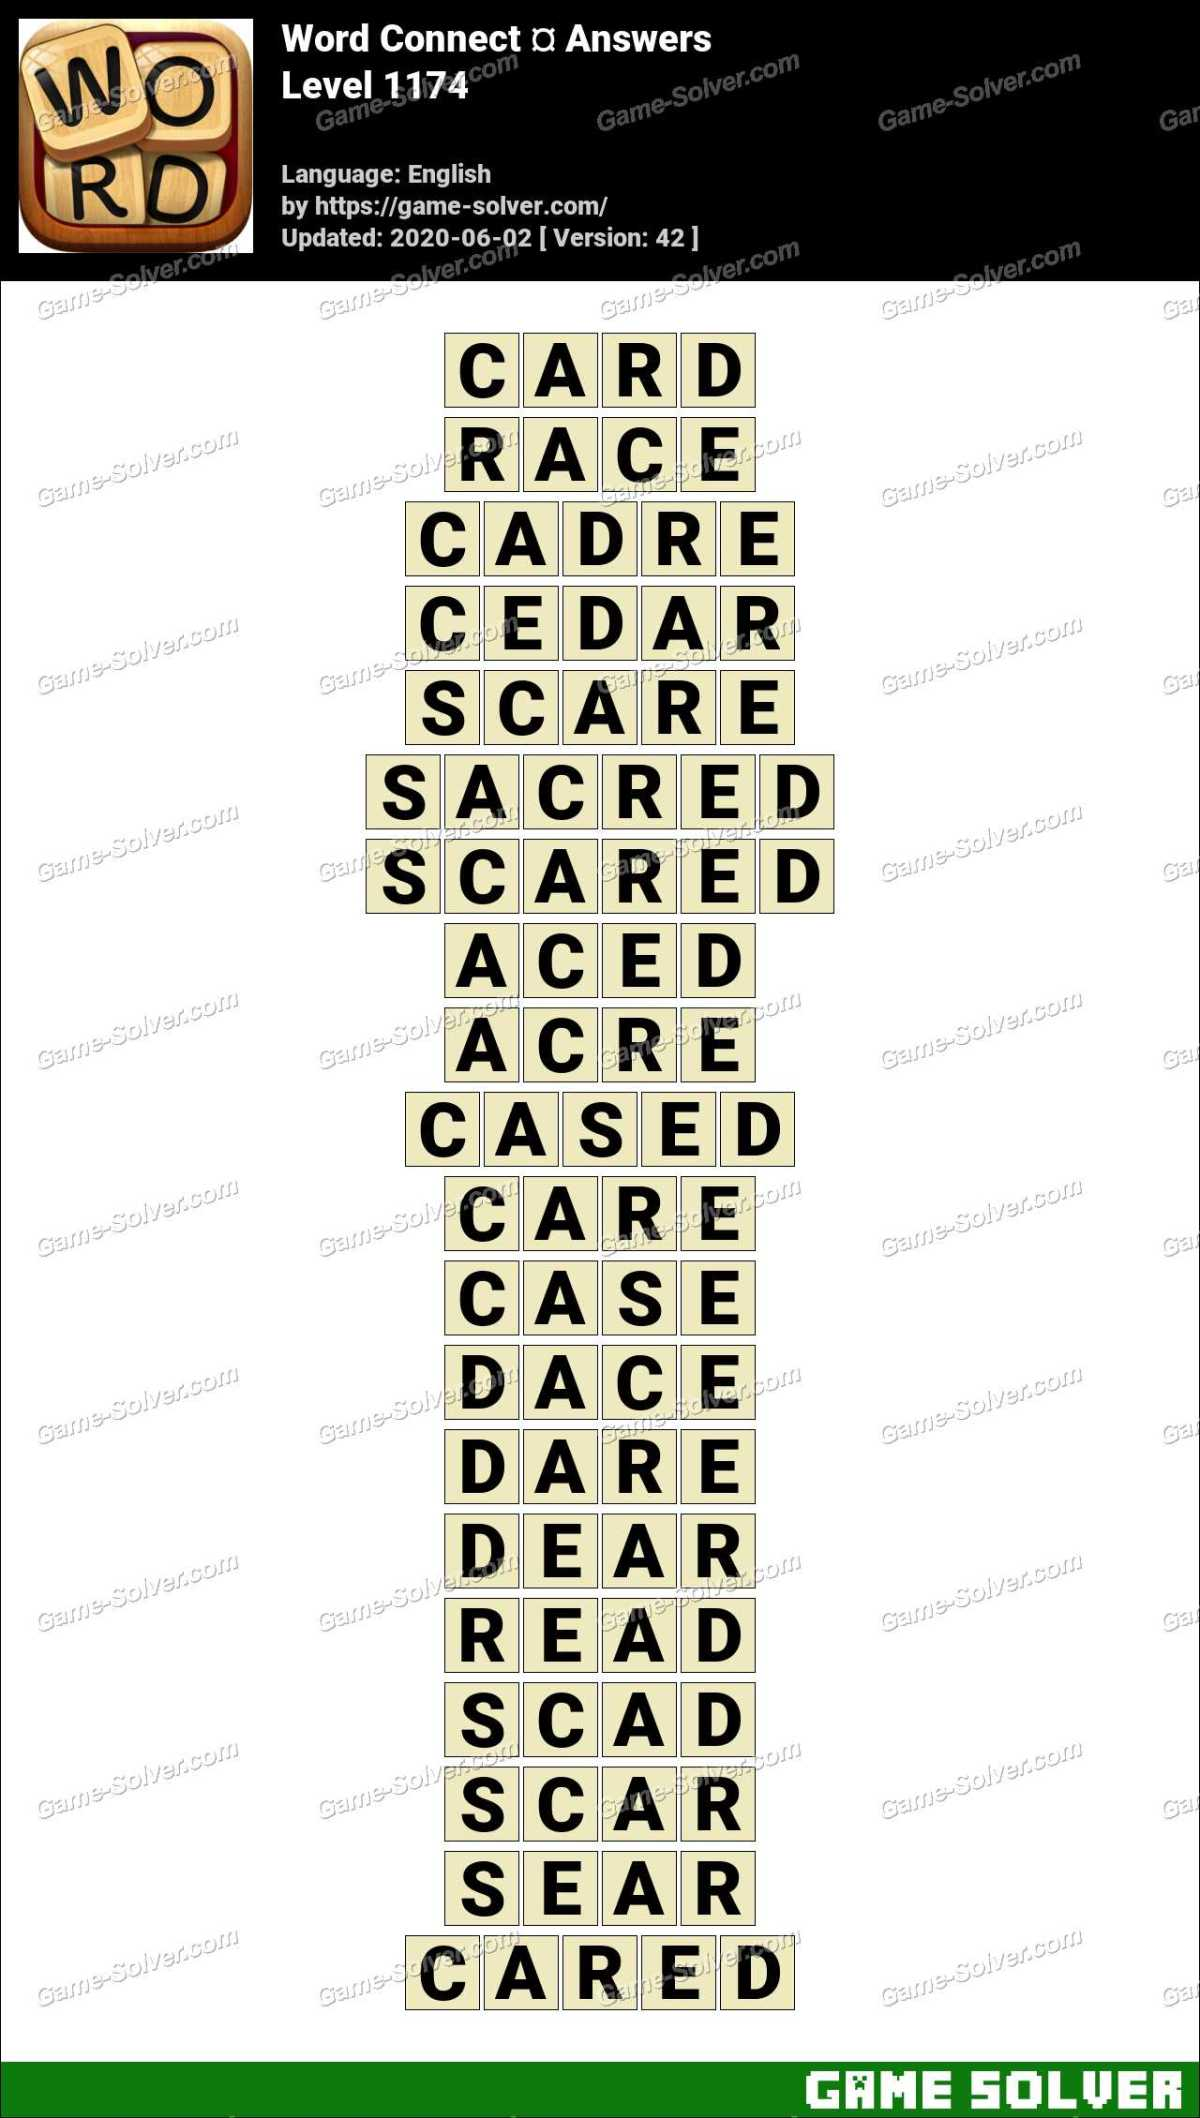 Word Connect Level 1174 Answers